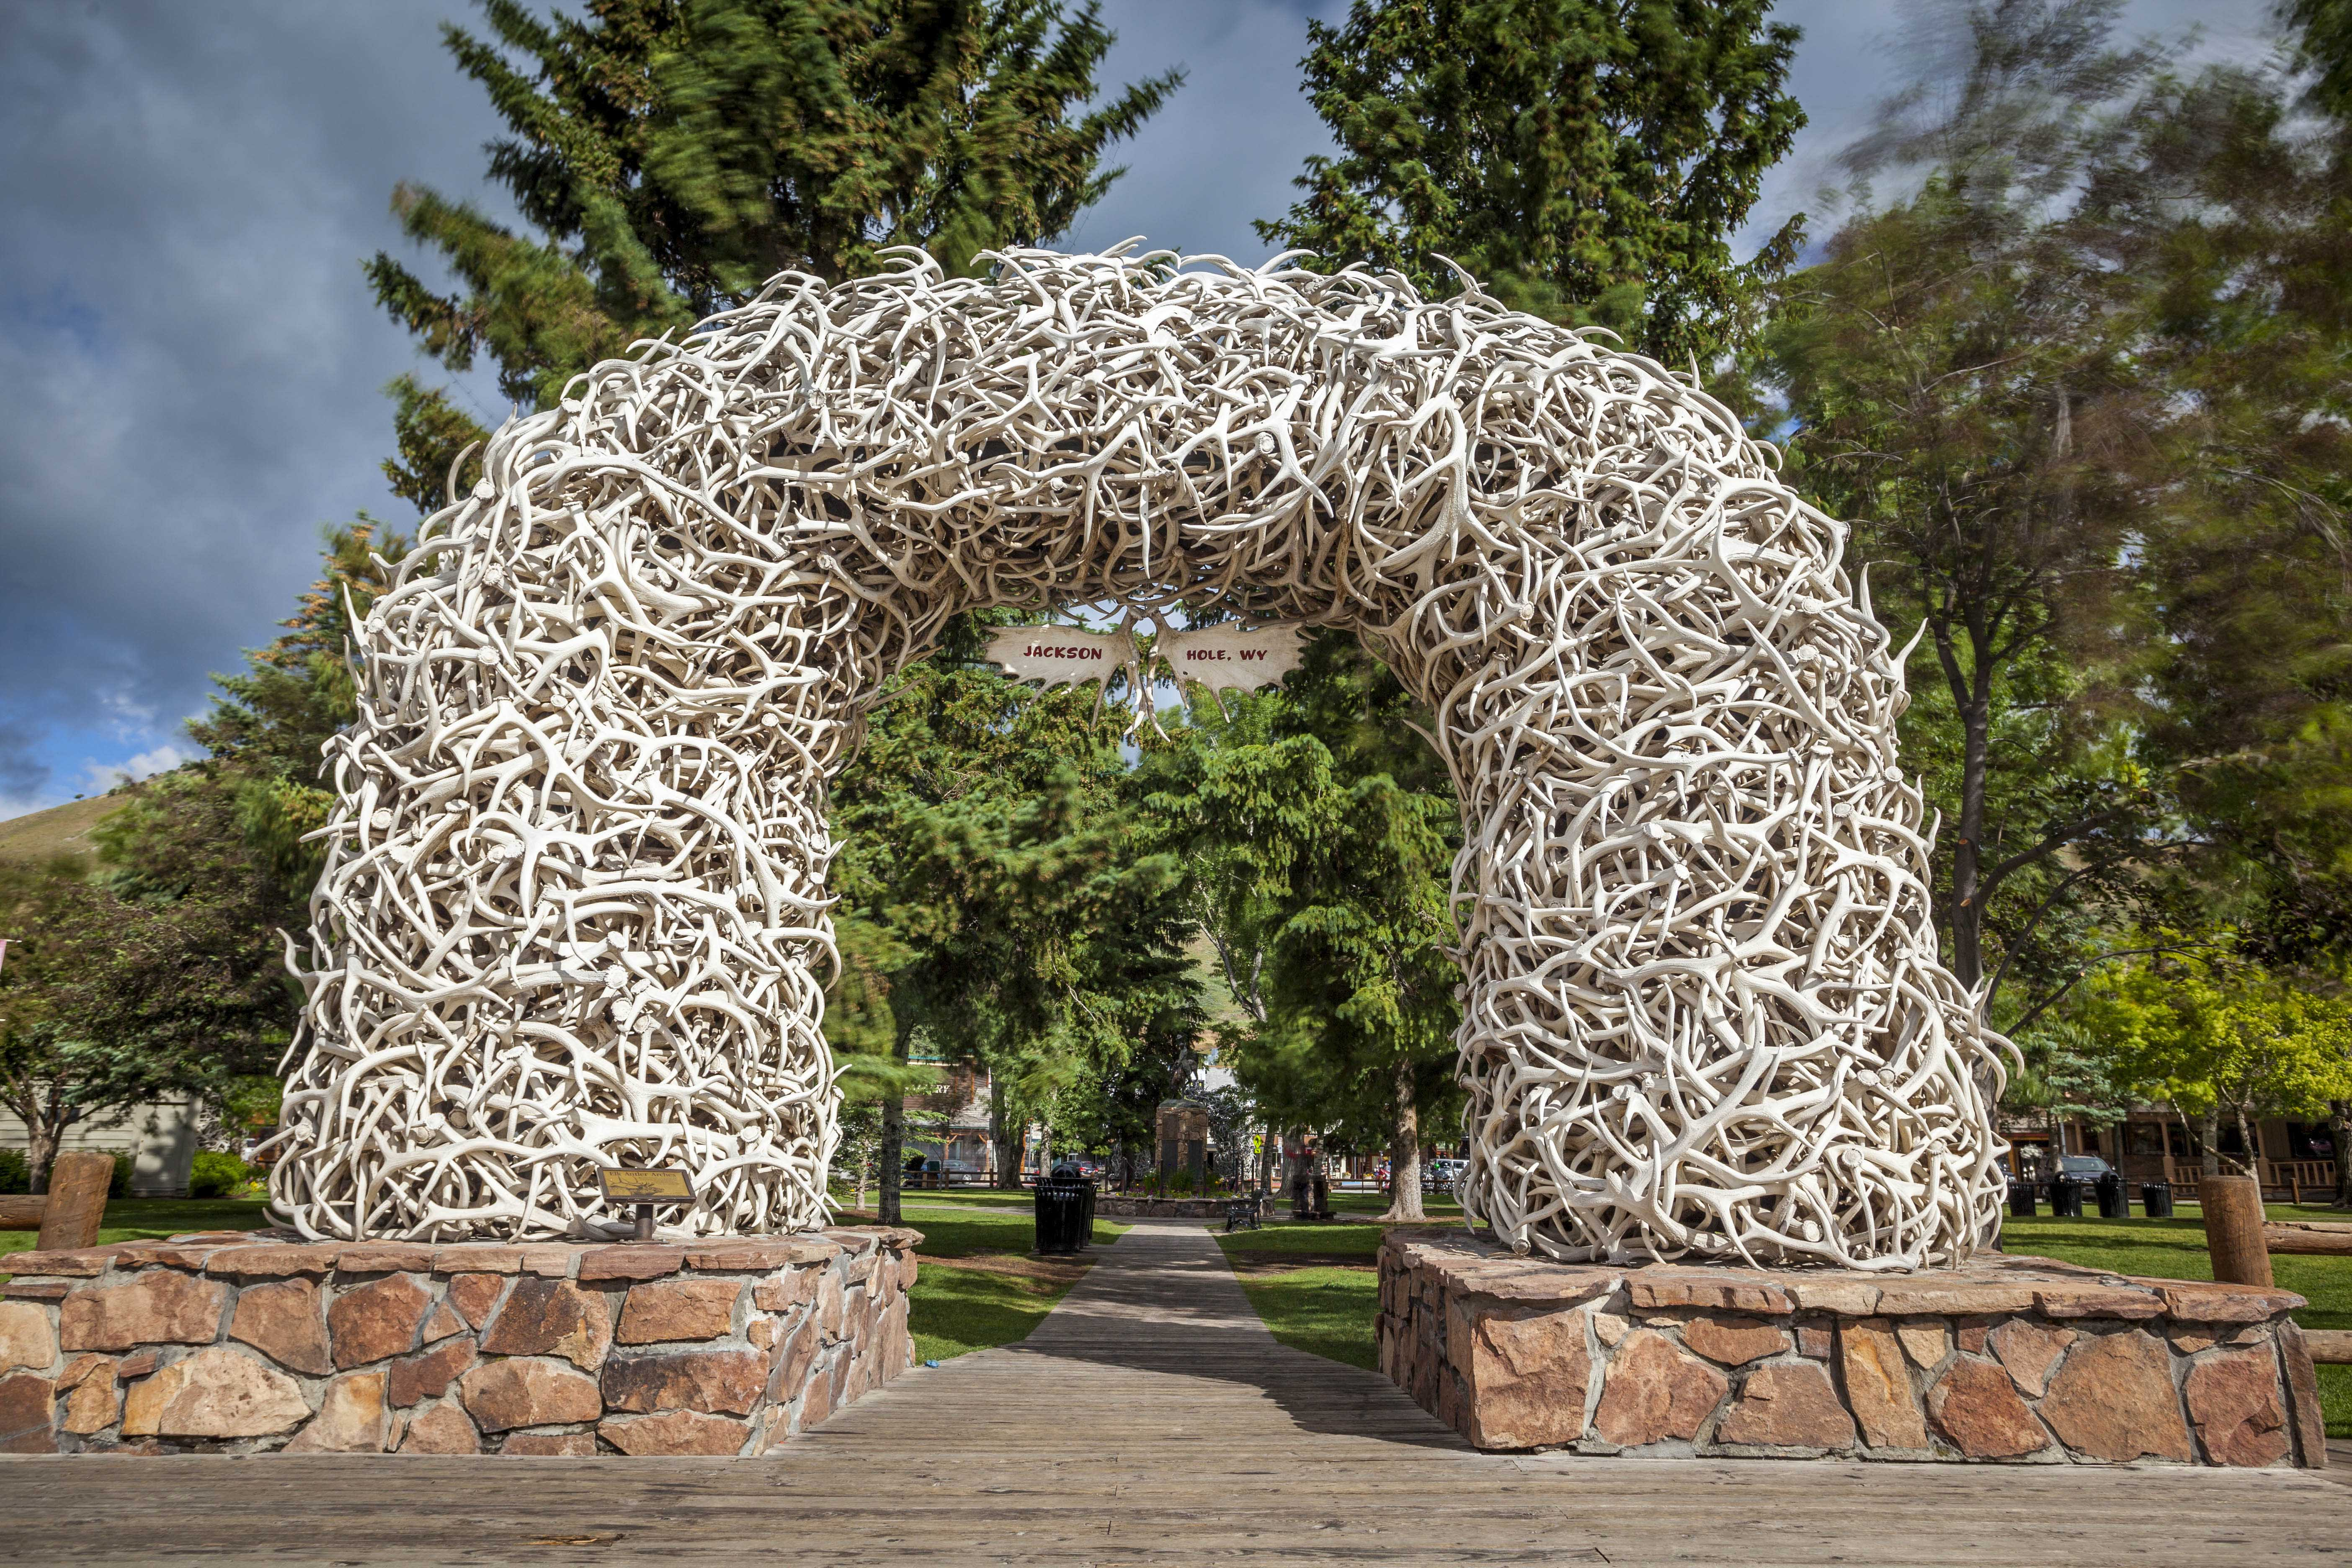 Elk Antler Arches in Jackson Town Square, Wyoming, USA